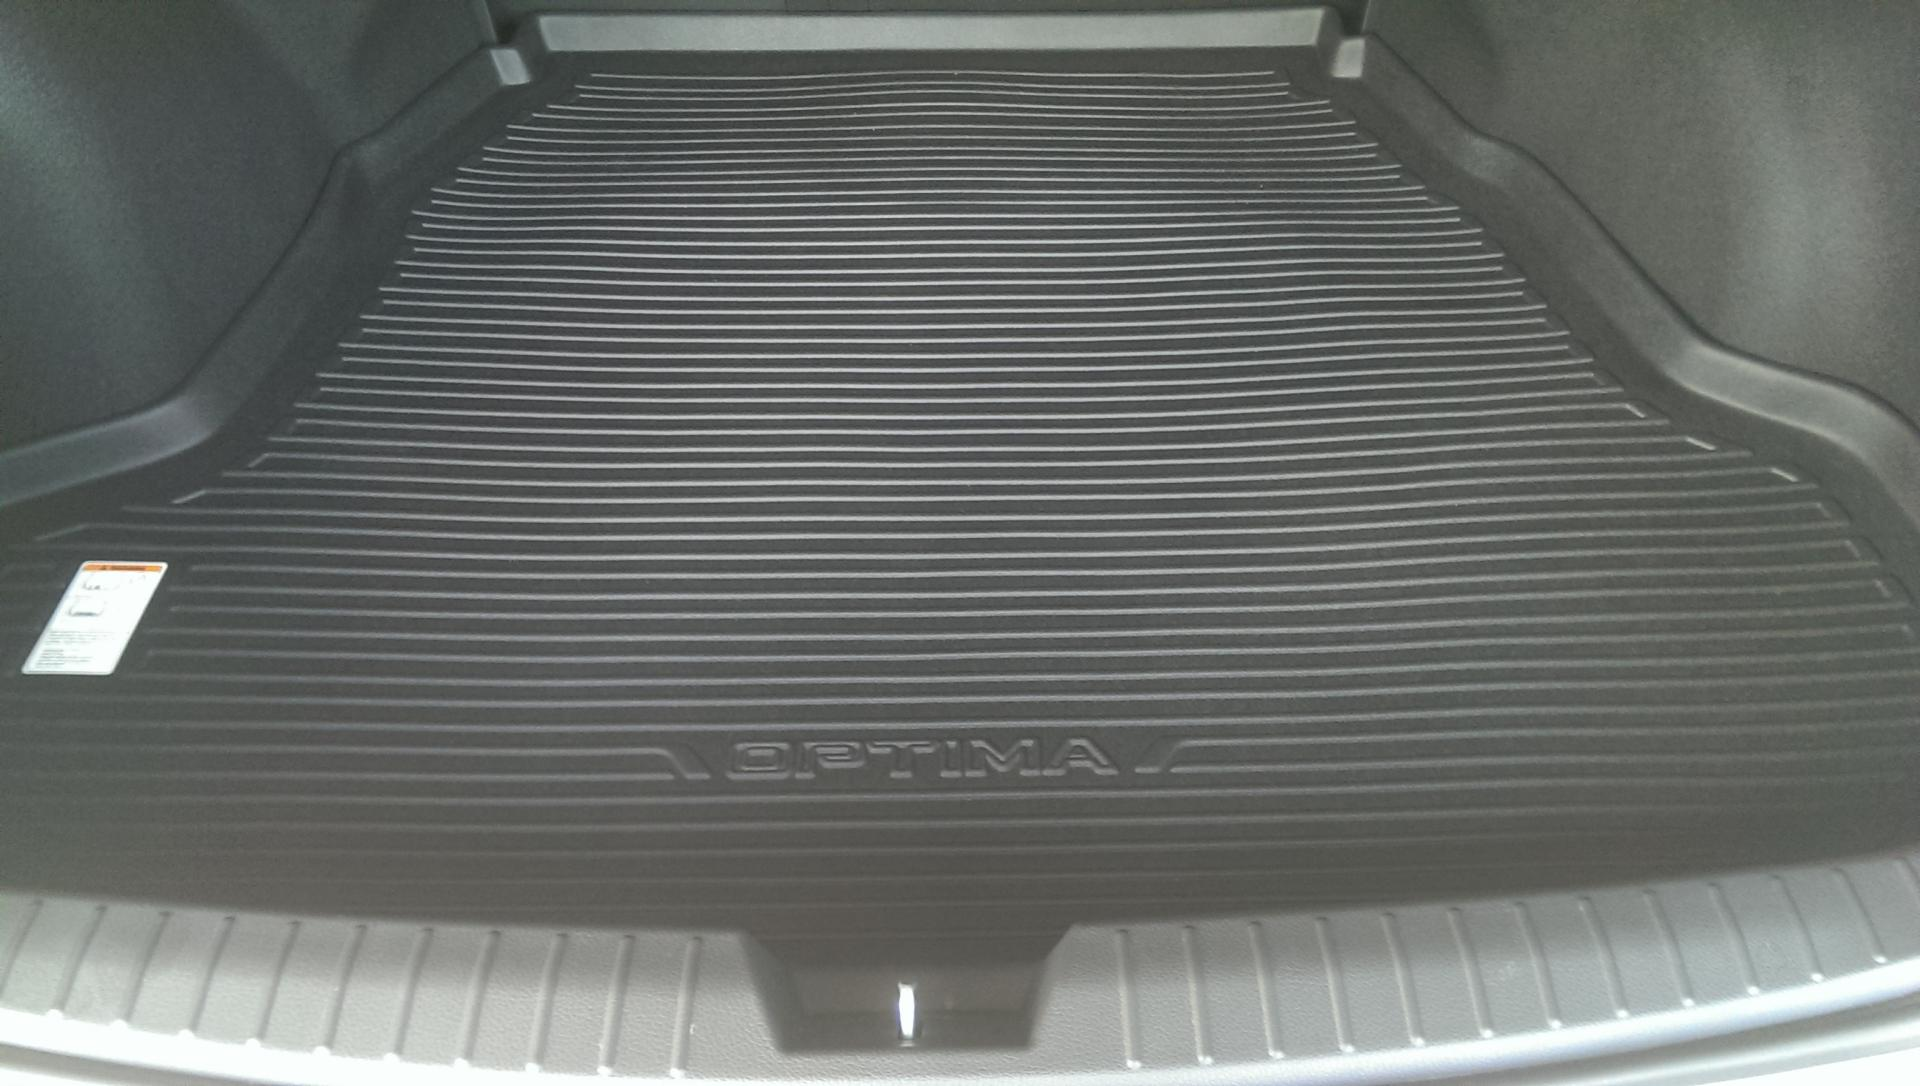 Weathertech digitalfit all-season mats - front, rear and trunk too-2013-07-03-19.11.49.jpg